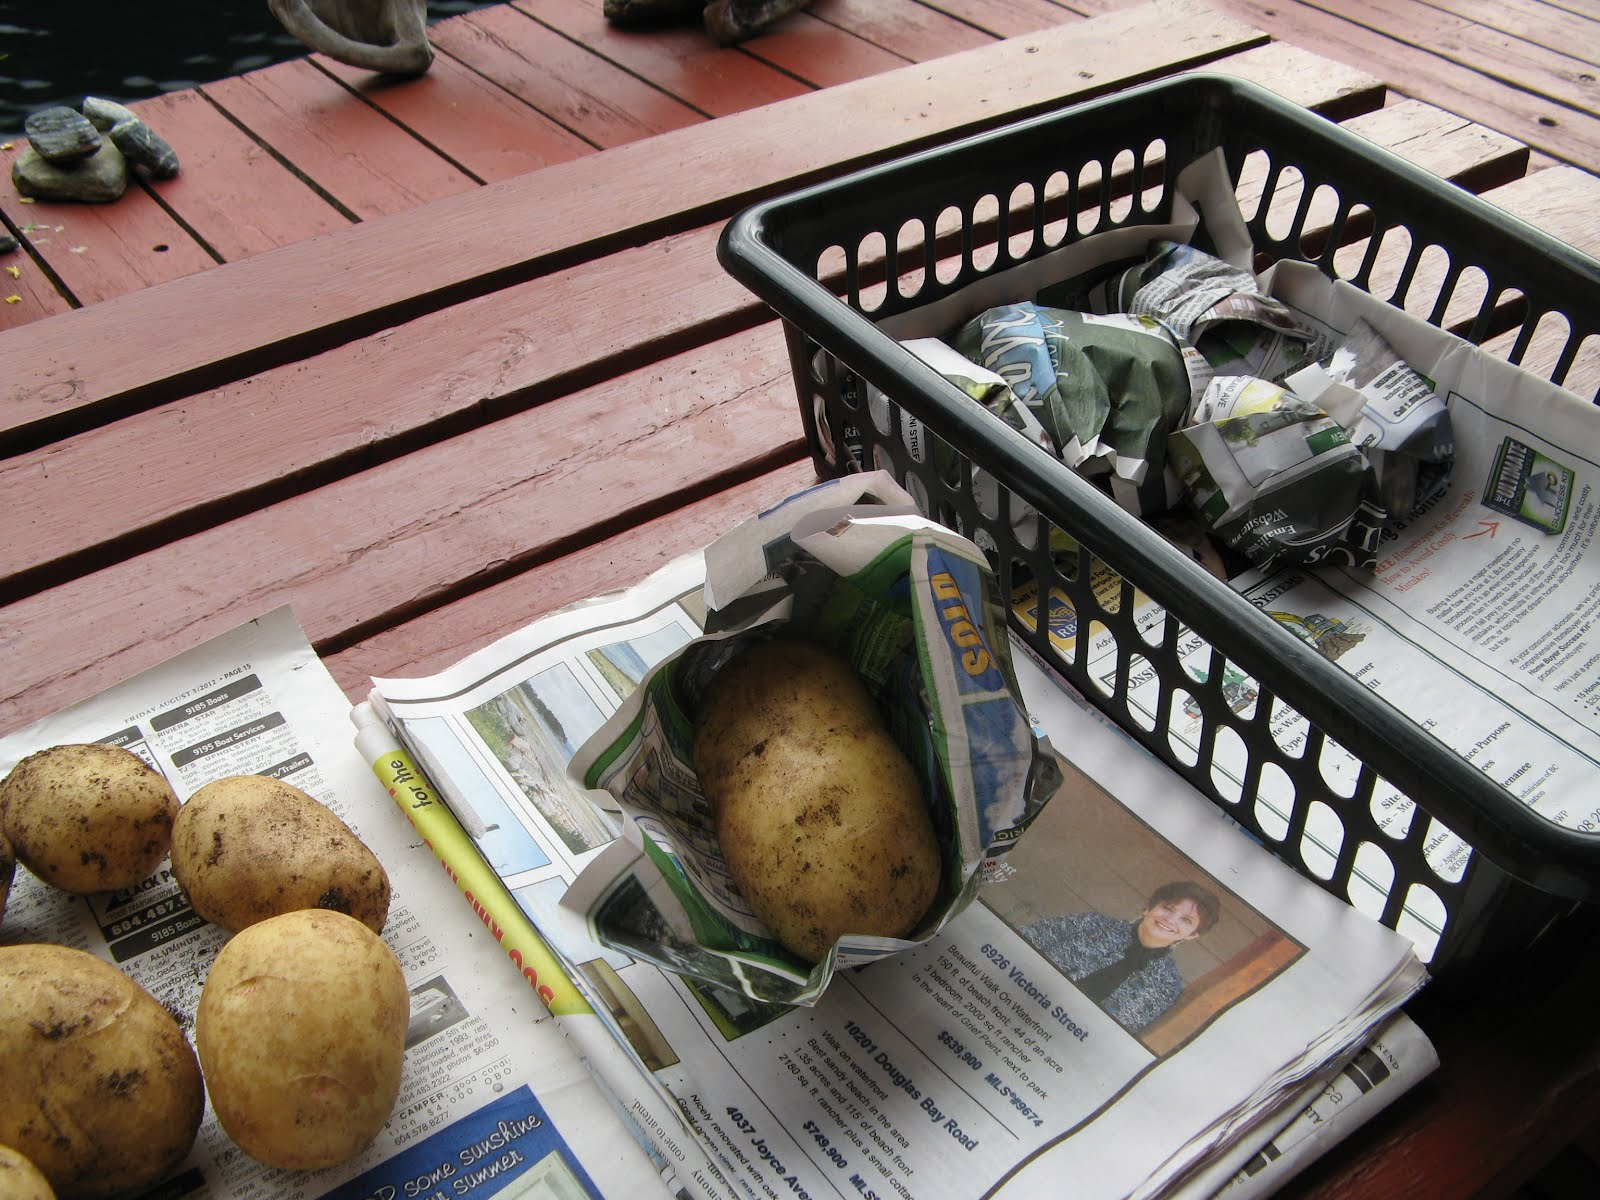 Powell River Books Blog: Preserving: Harvesting and Storing Potatoes